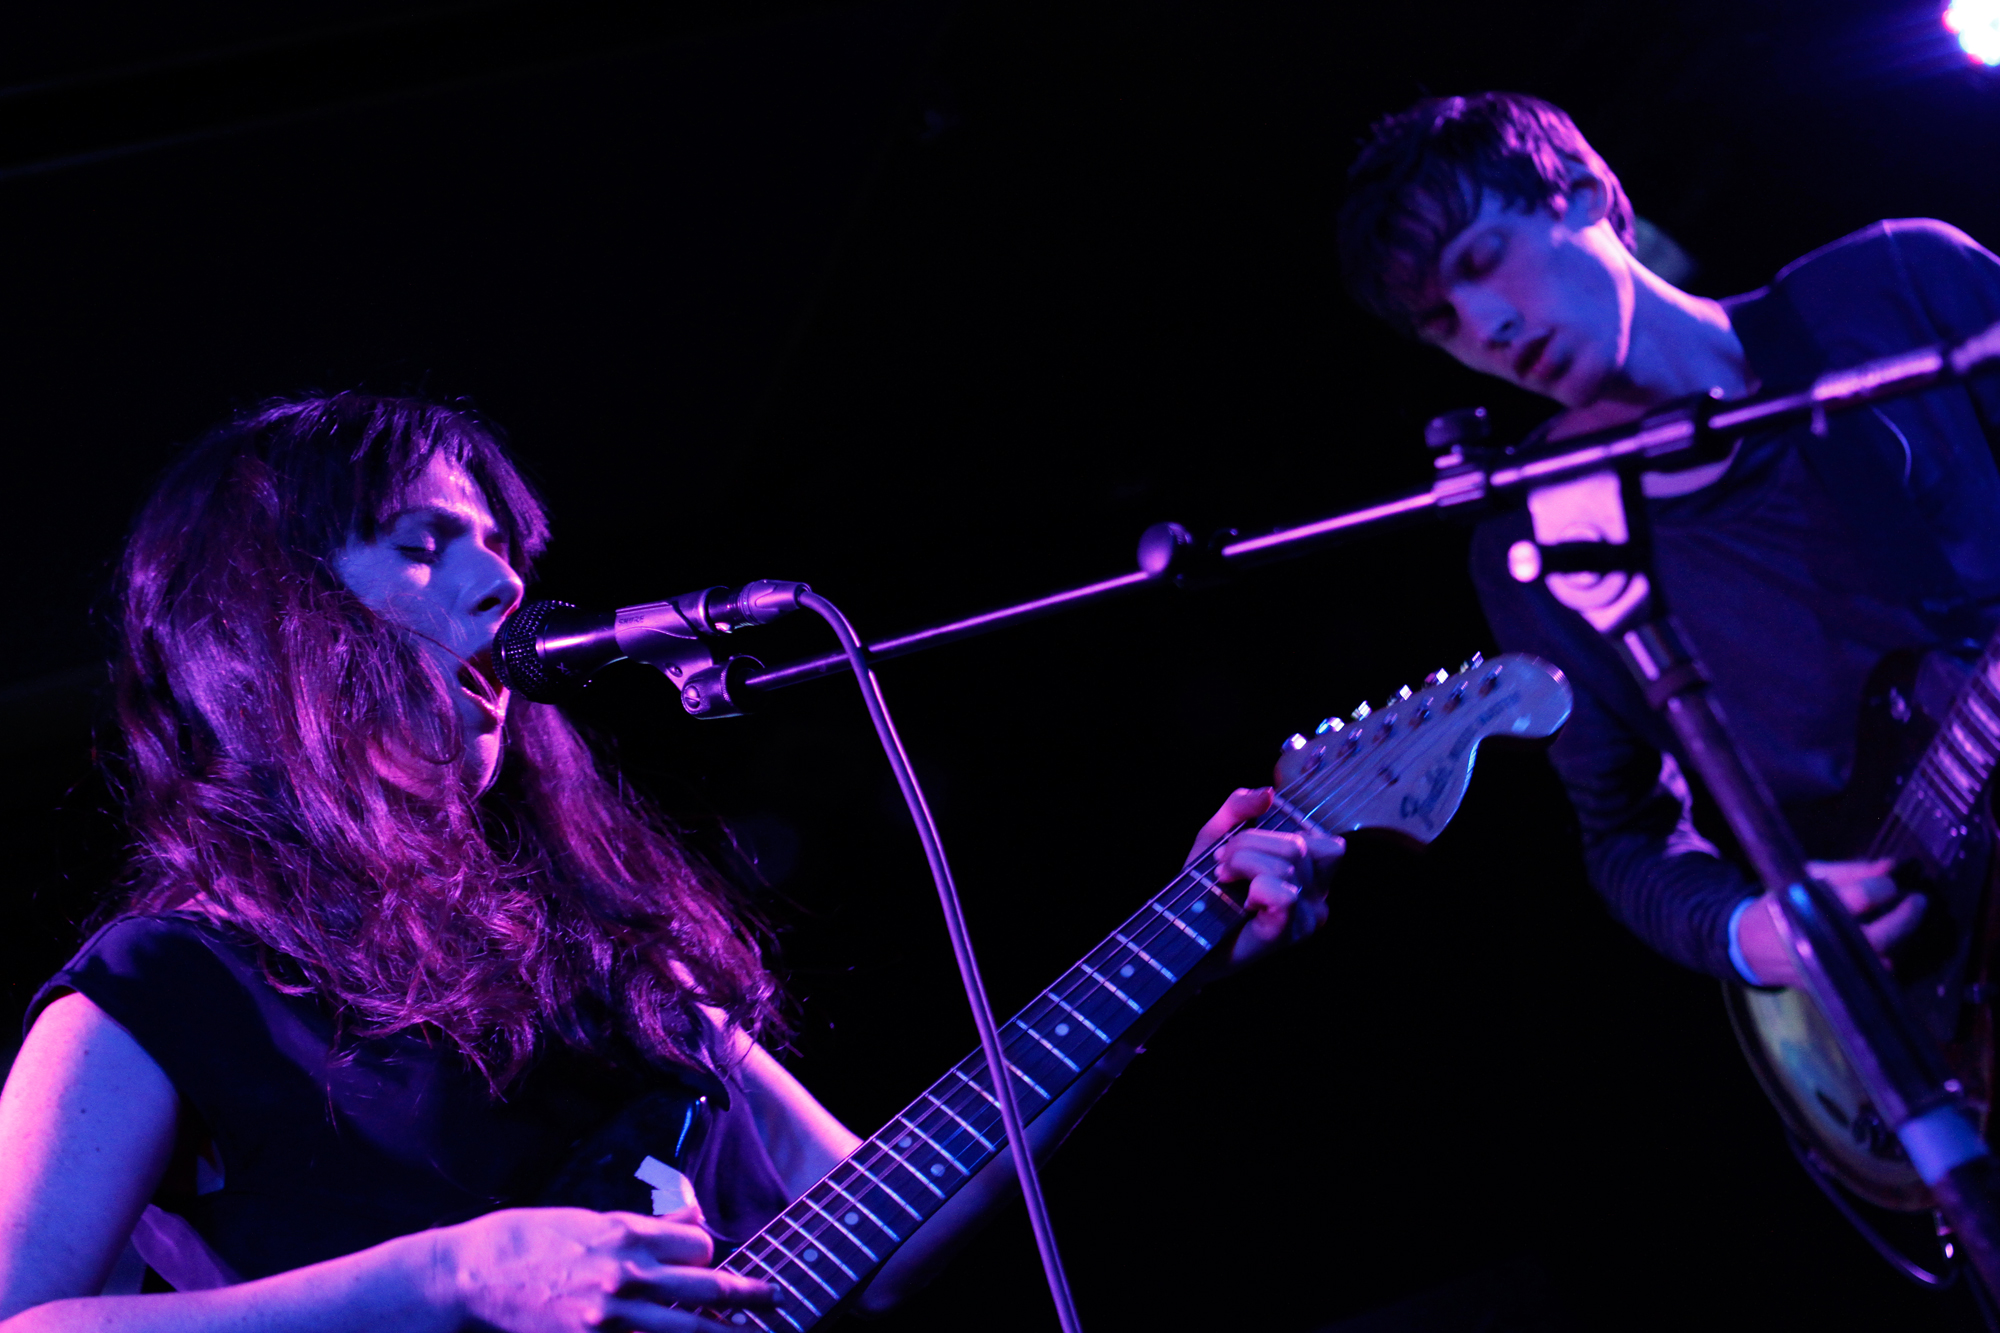 Exitmusic plays at Knitting Factory in Brooklyn, NY on December 6, 2012.